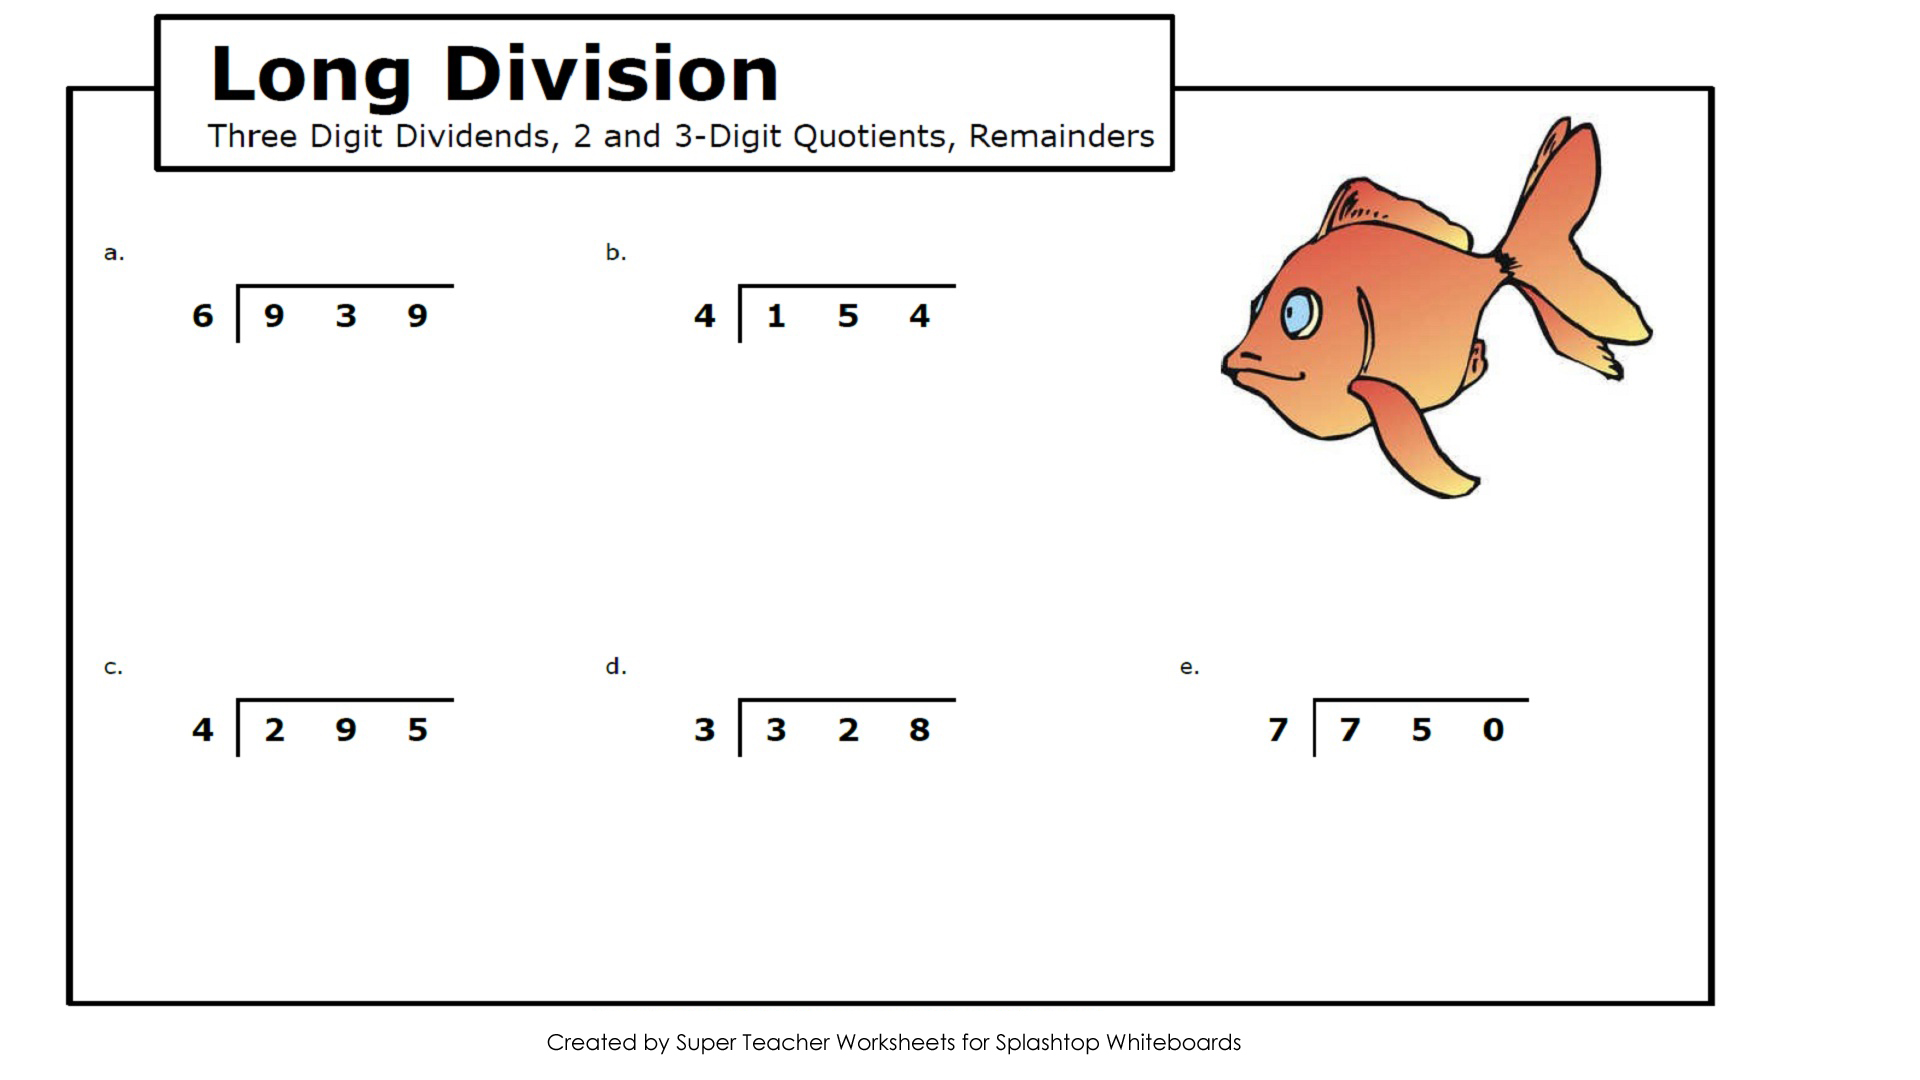 Worksheet Long Division Decimals how to solve division problems with decimals order paper cheap www superteacherworksheets com